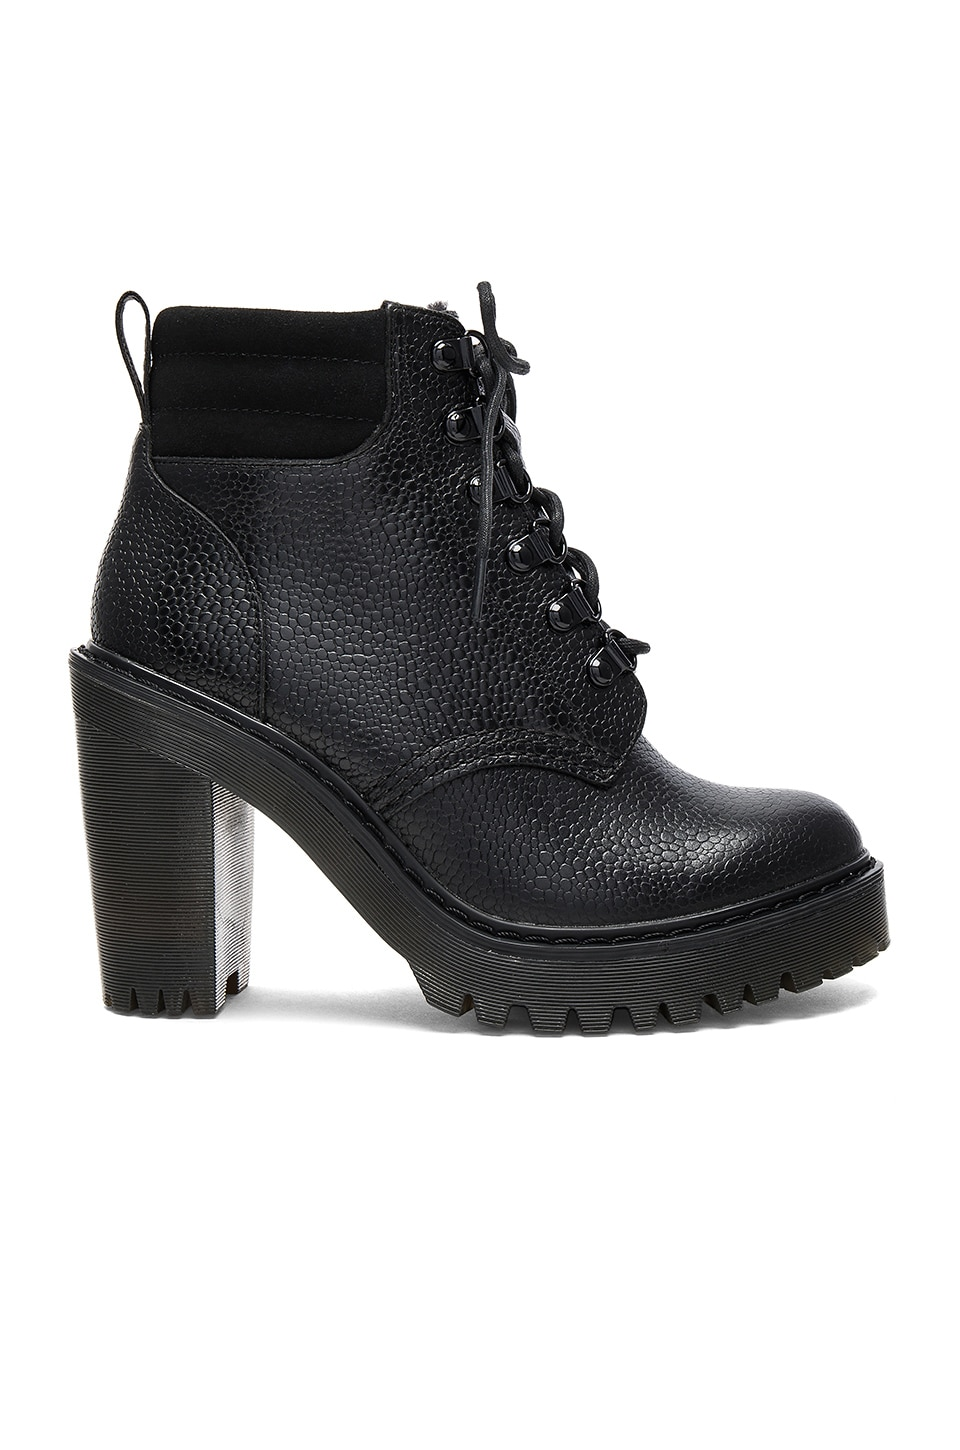 Persephone FL 6 Eye Boots by Dr. Martens